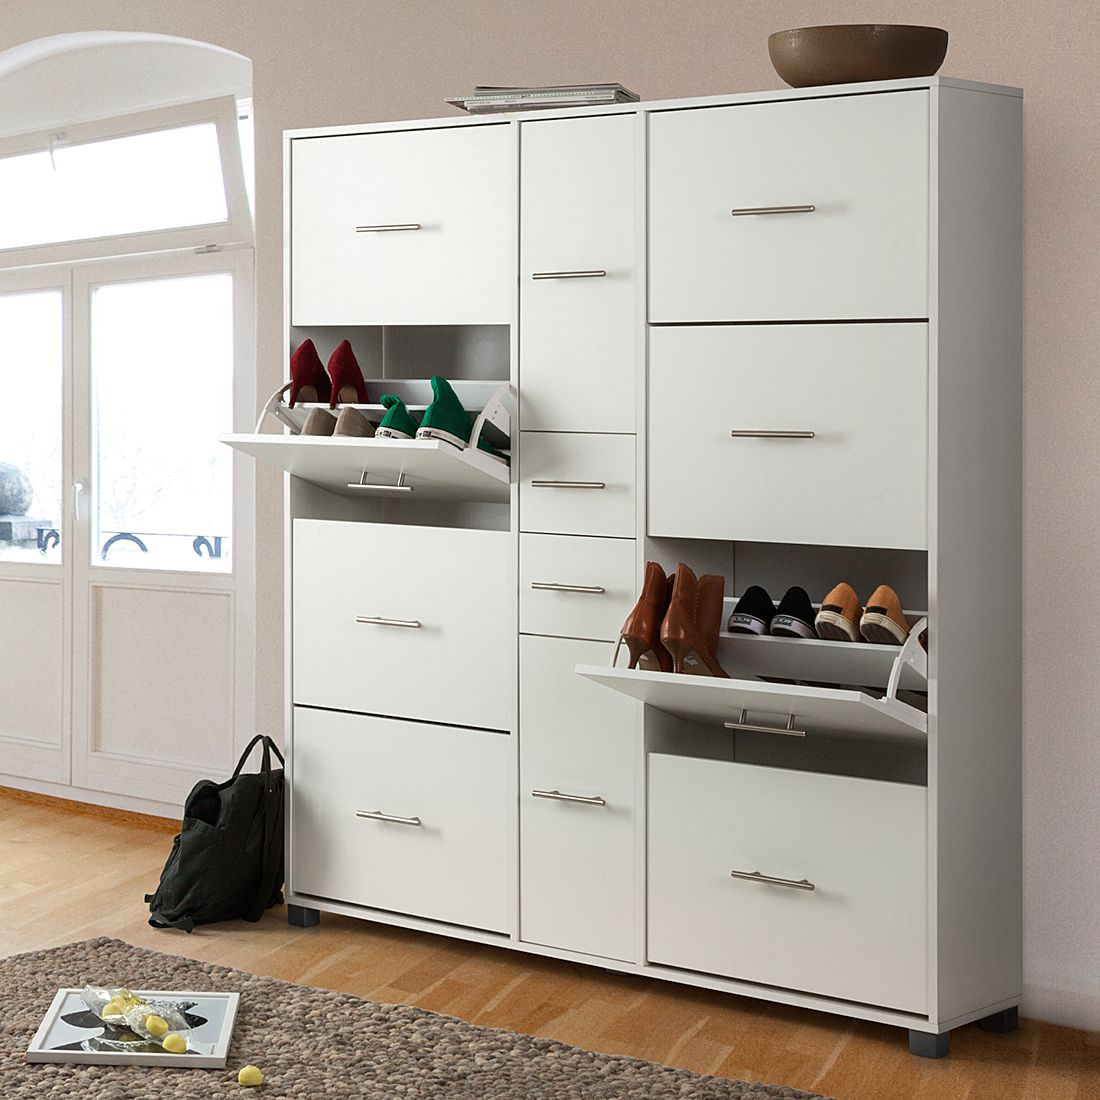 schuhschrank adrianna iii wei schuhkommode schuhkipper schuh kommode kipper ebay. Black Bedroom Furniture Sets. Home Design Ideas